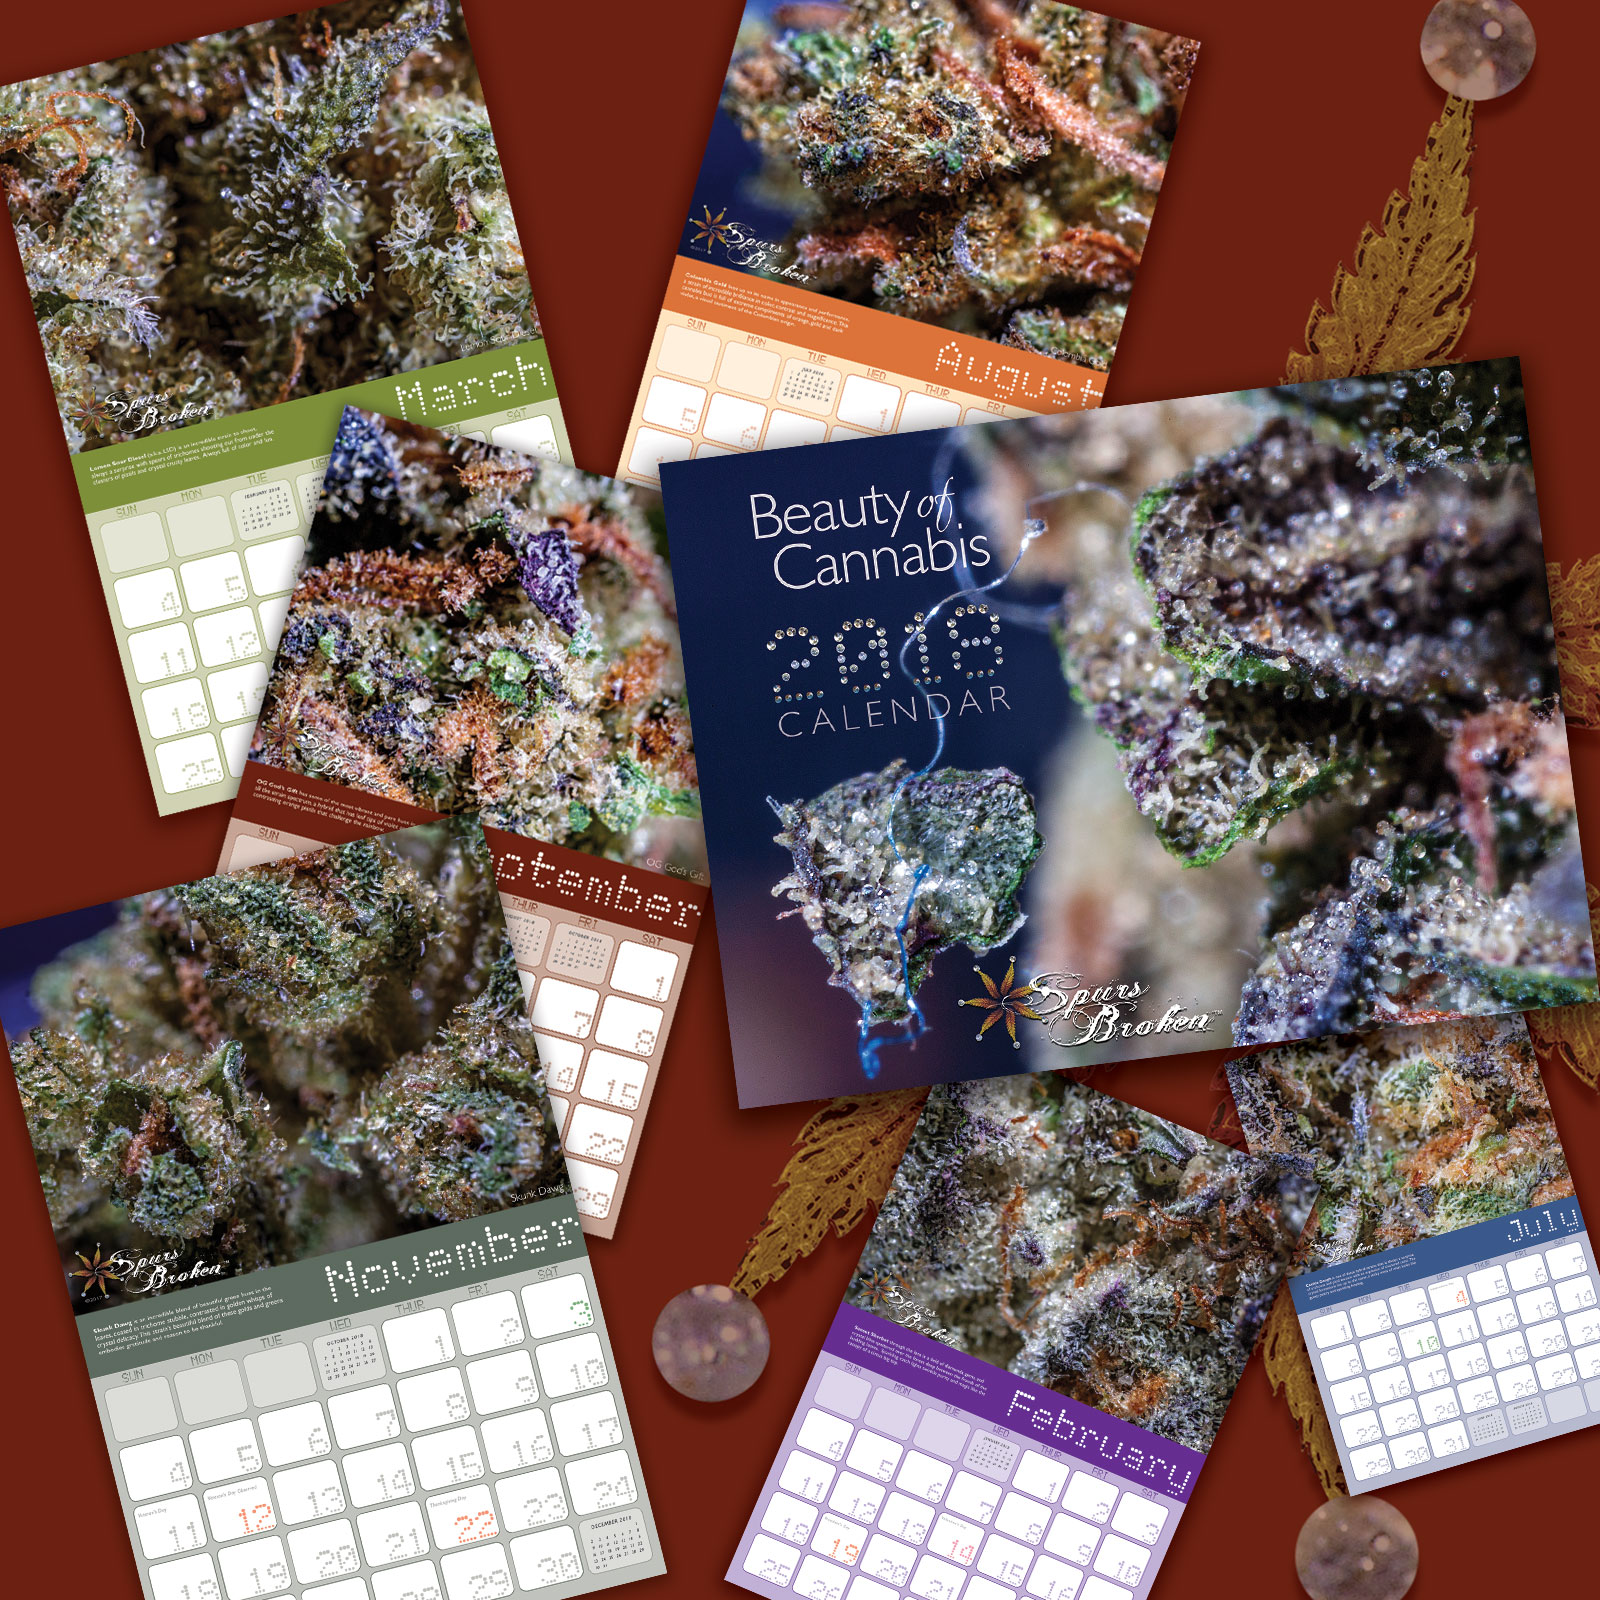 More Page views from inside the calendar